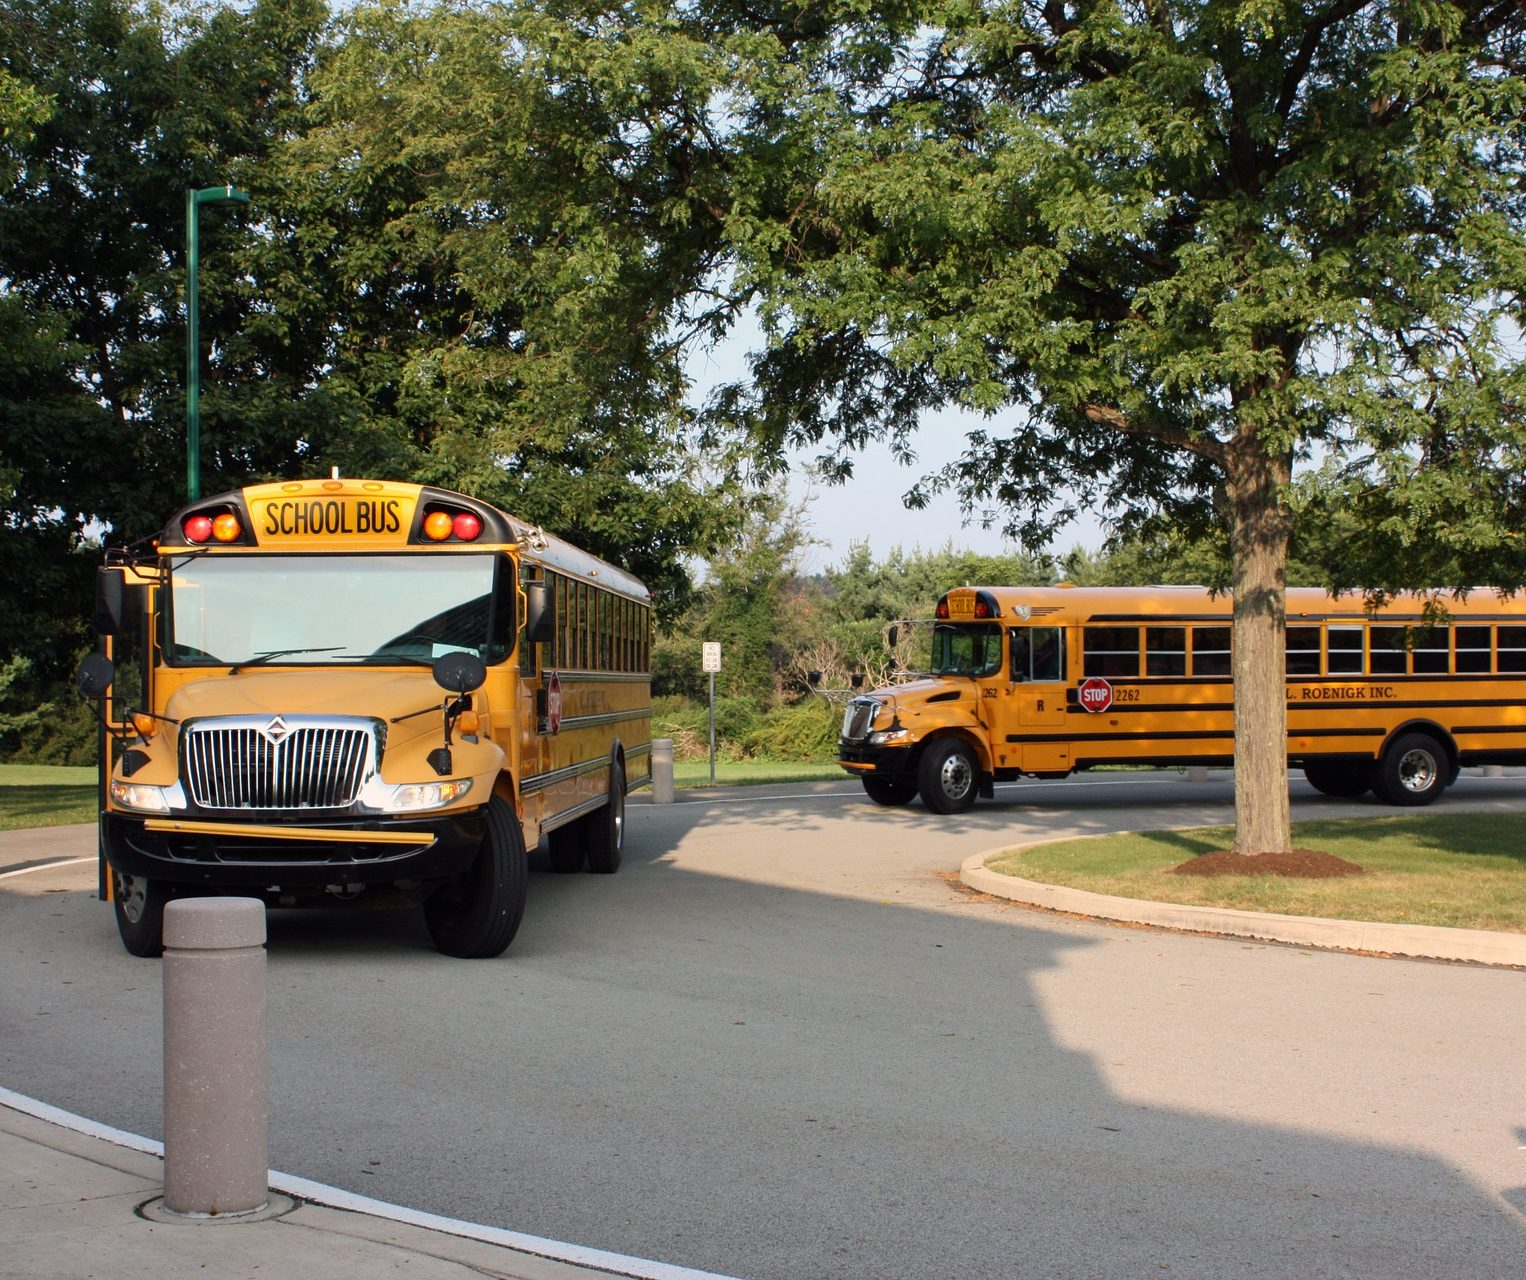 A pair of school buses rounding a circle.